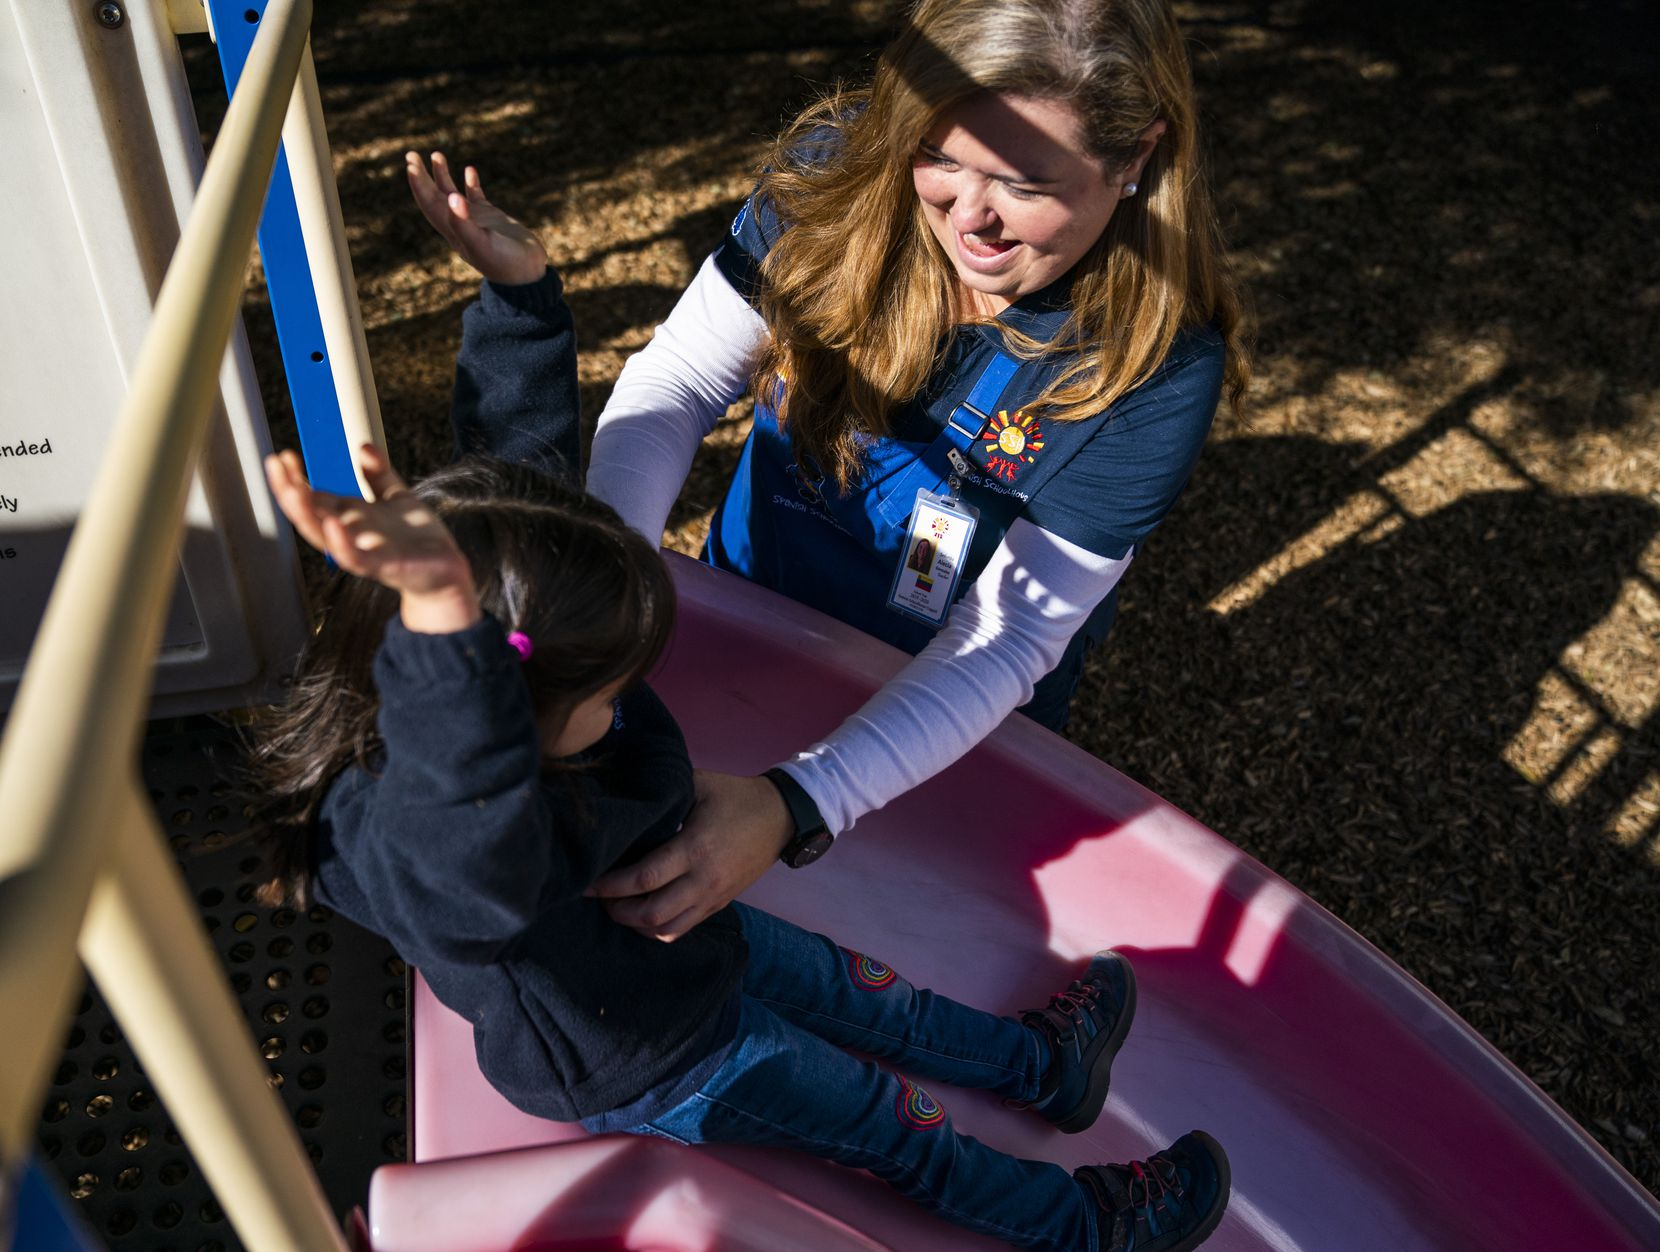 Teacher Alecia Gonzalez helps Natalia Lopez-Tafoya, 3,  down a slide on the playground on Nov. 18, 2019, at Spanish Schoolhouse in Coppell. Gonzalez is among several Venezuelan teachers at the Spanish-speaking preschool.